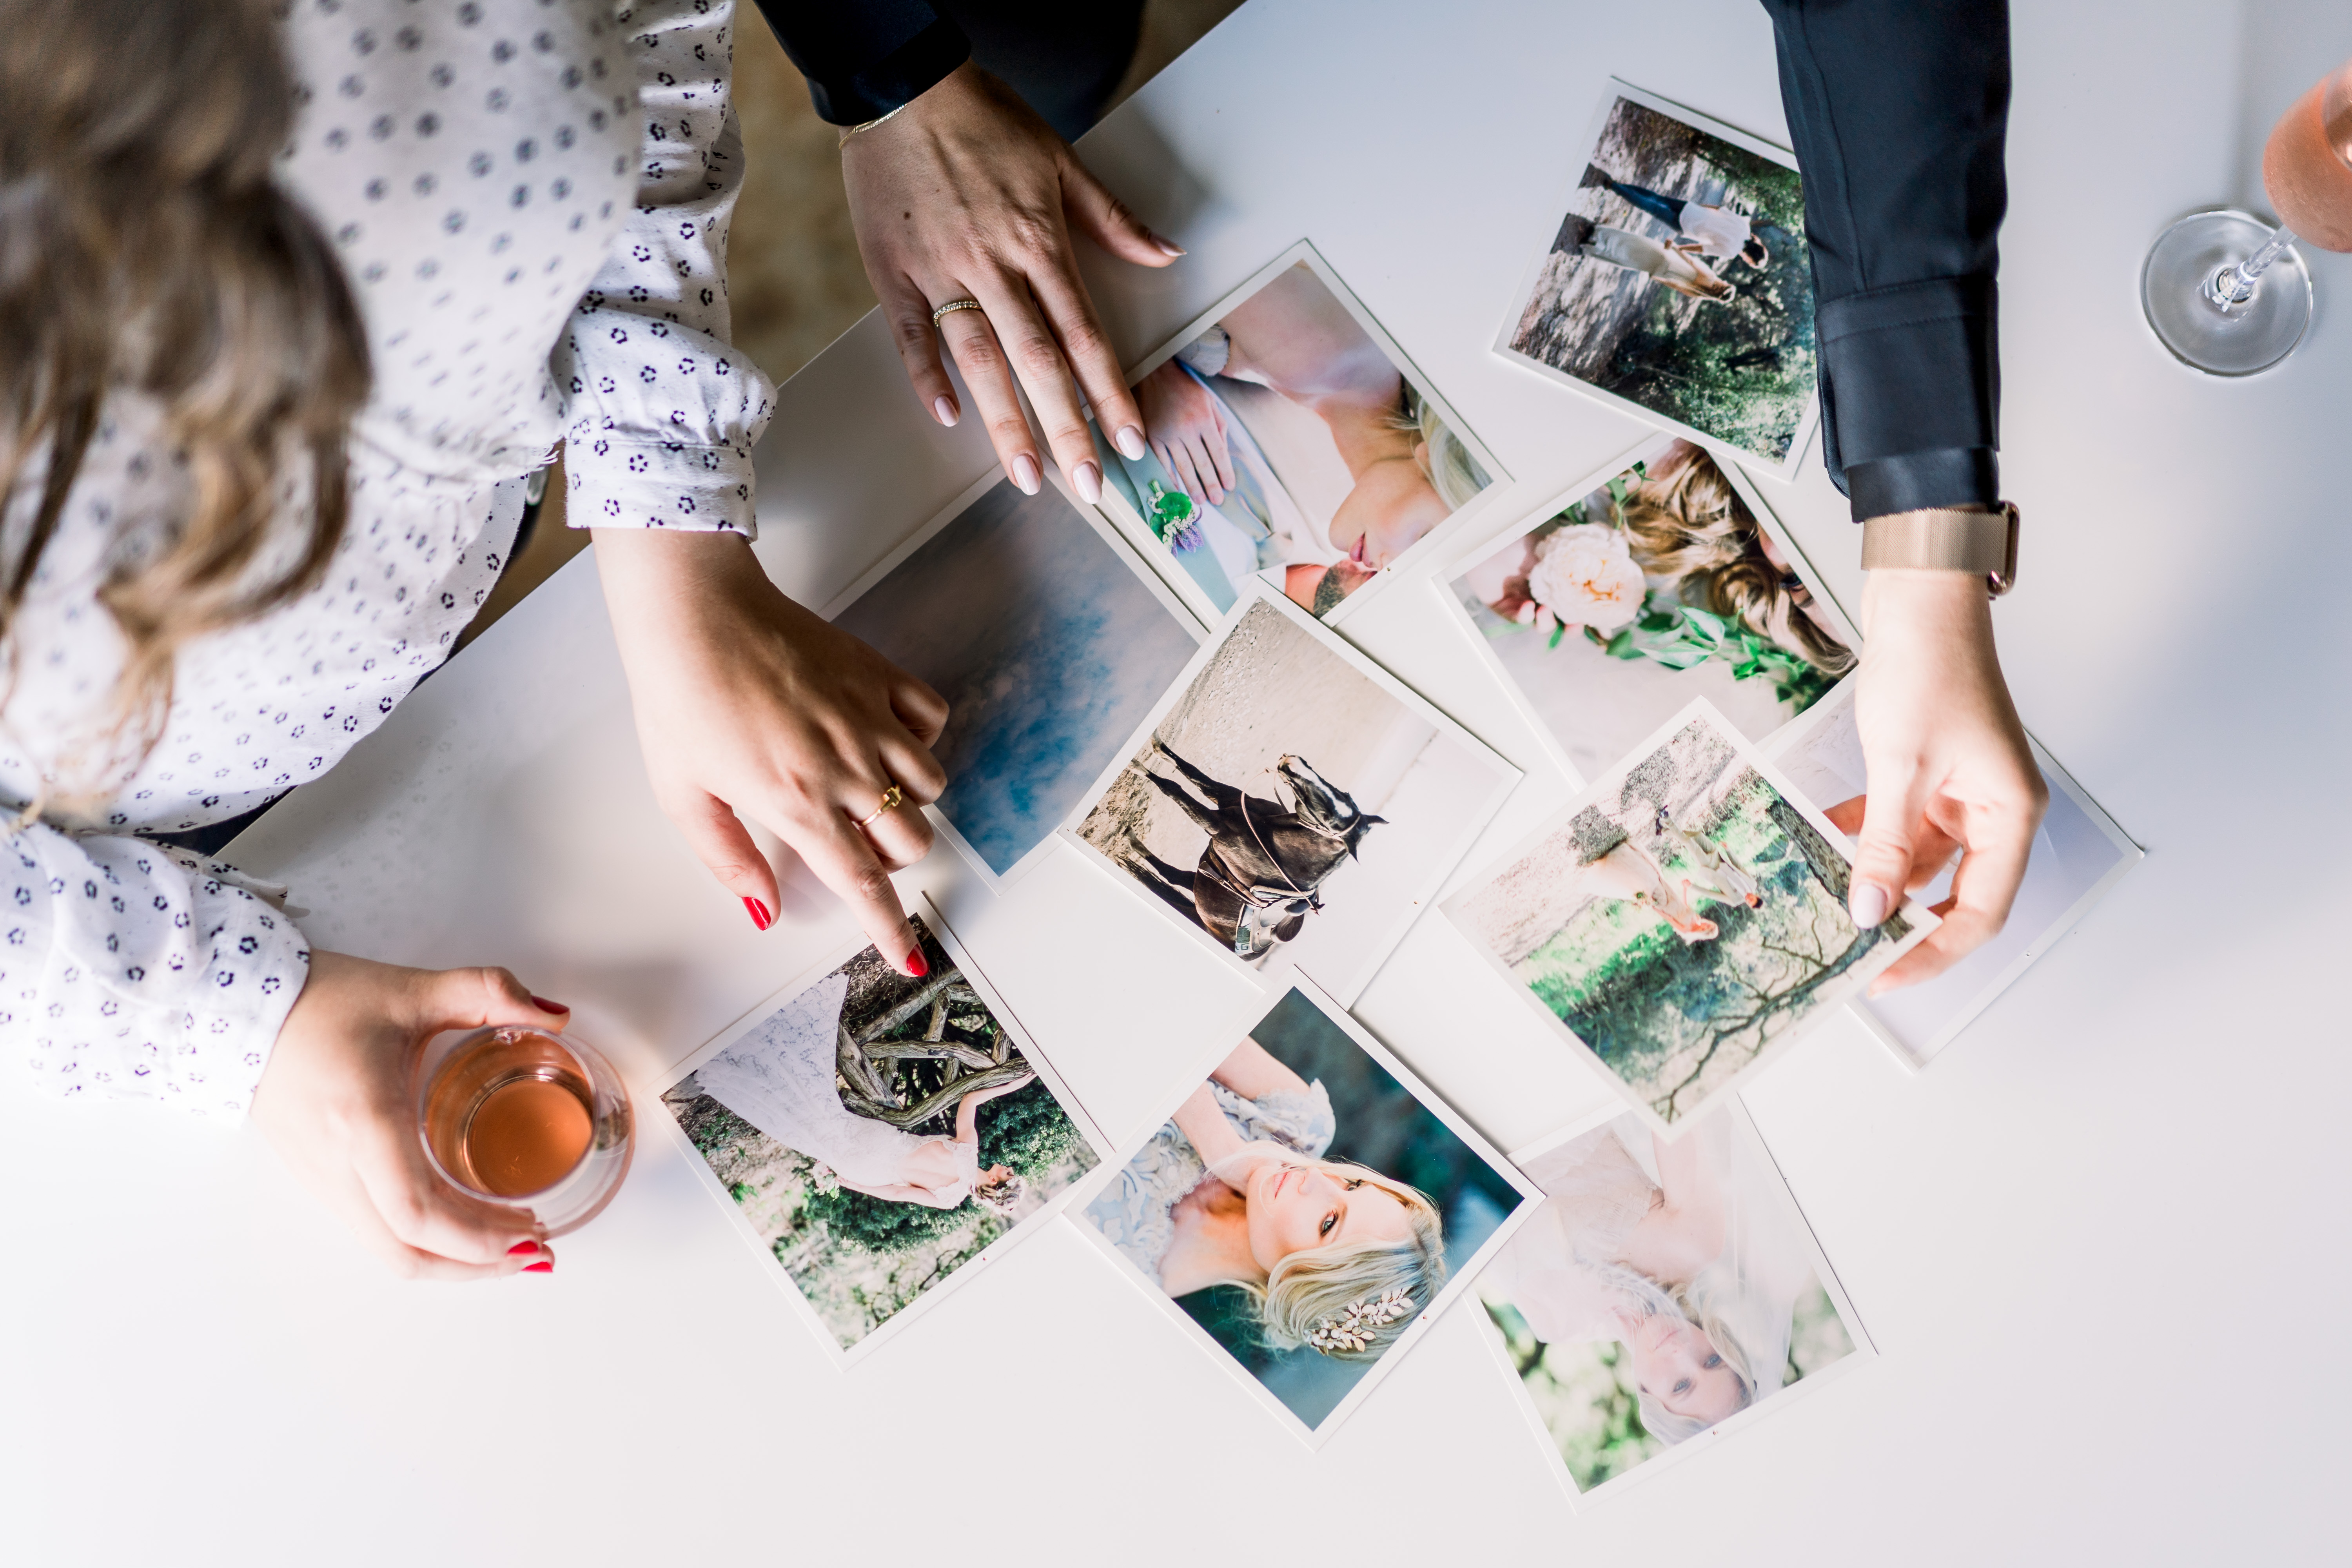 Two people looking at pictures